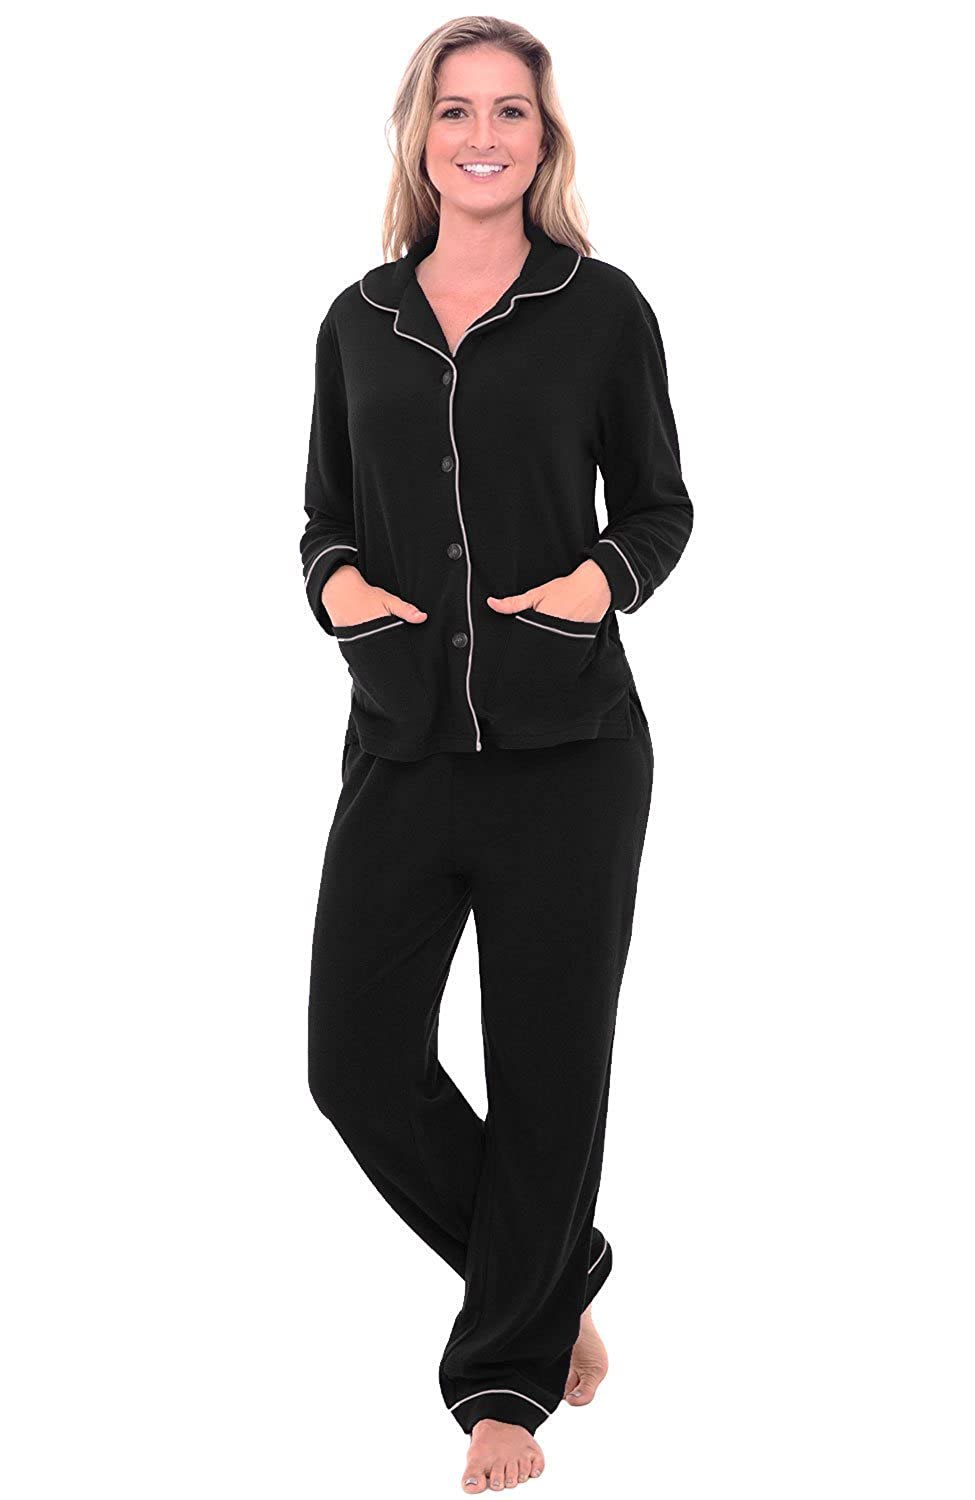 Del Rossa Women's Fleece Pajamas, Long Button Down Pj Set